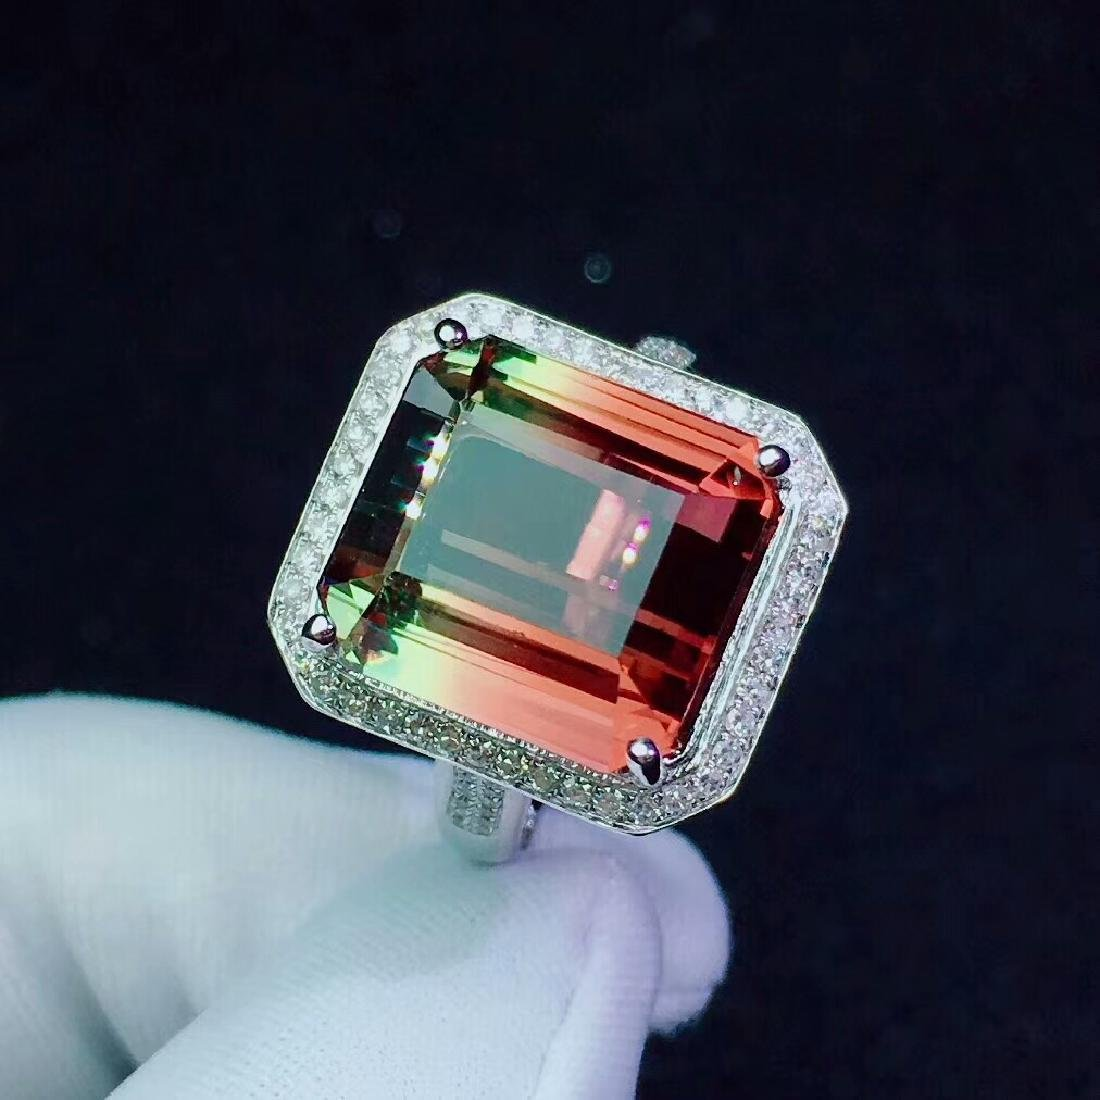 14.5ct Tourmaline Ring in 18kt white Gold - 3